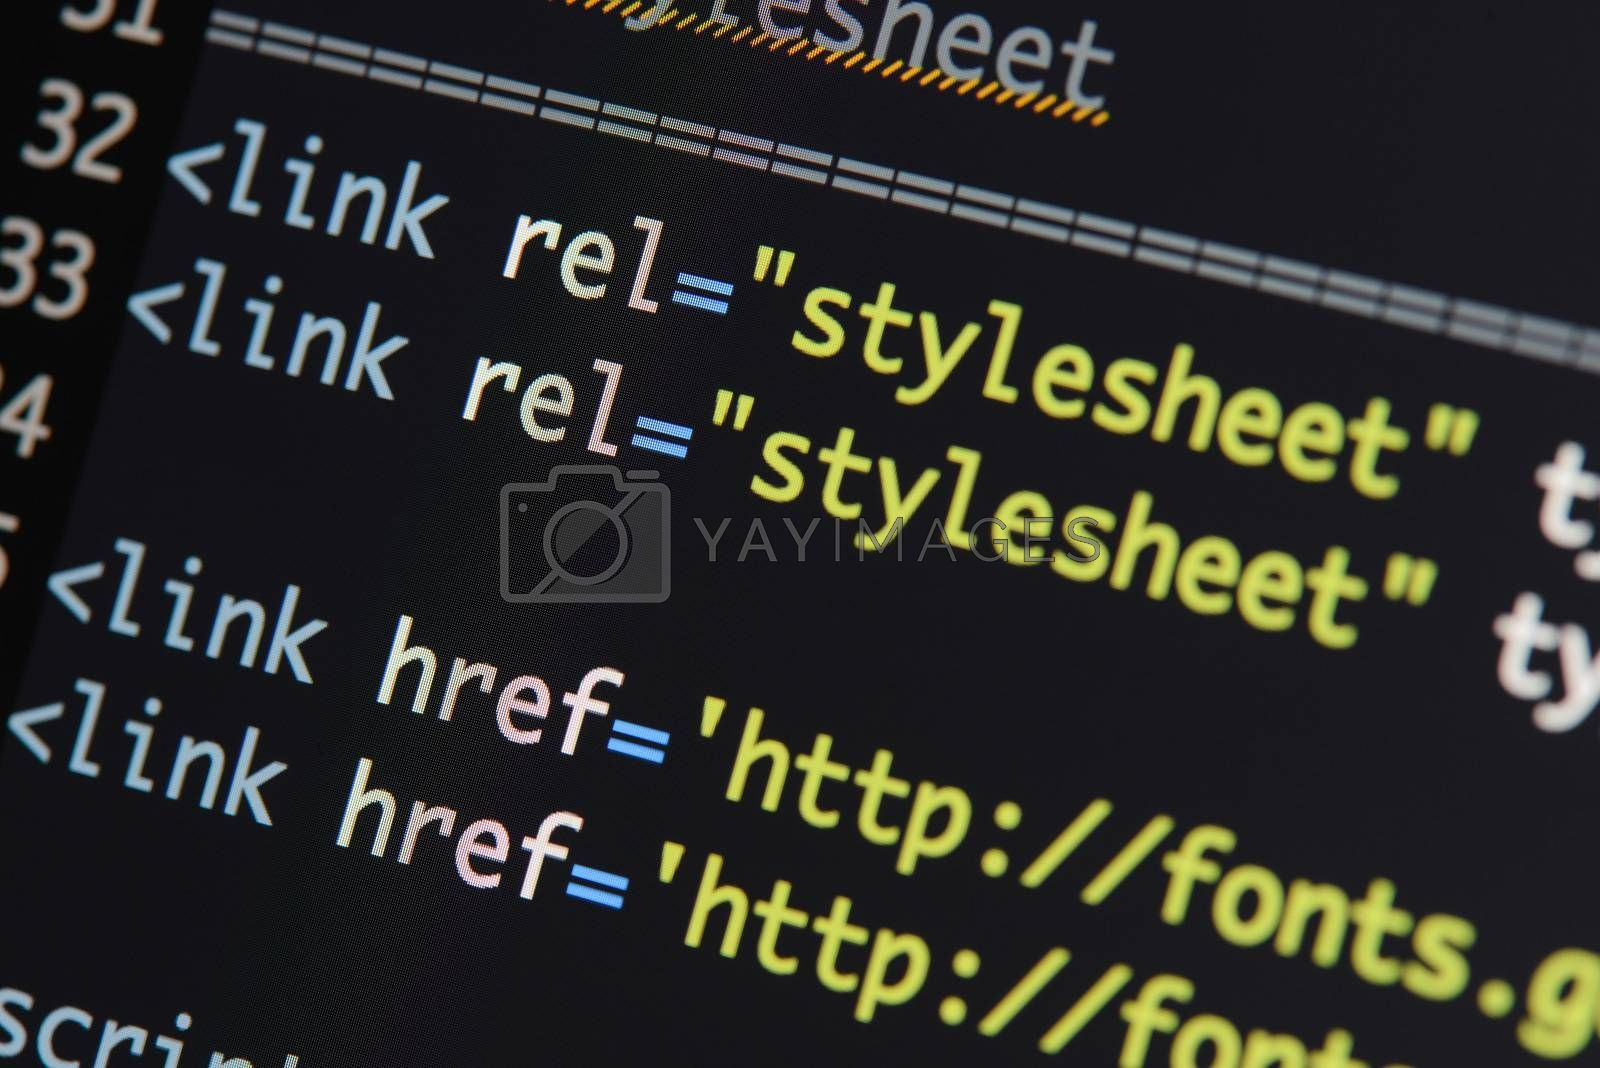 Real Html code developing screen. Programing workflow abstract algorithm concept. Lines of Html code visible.